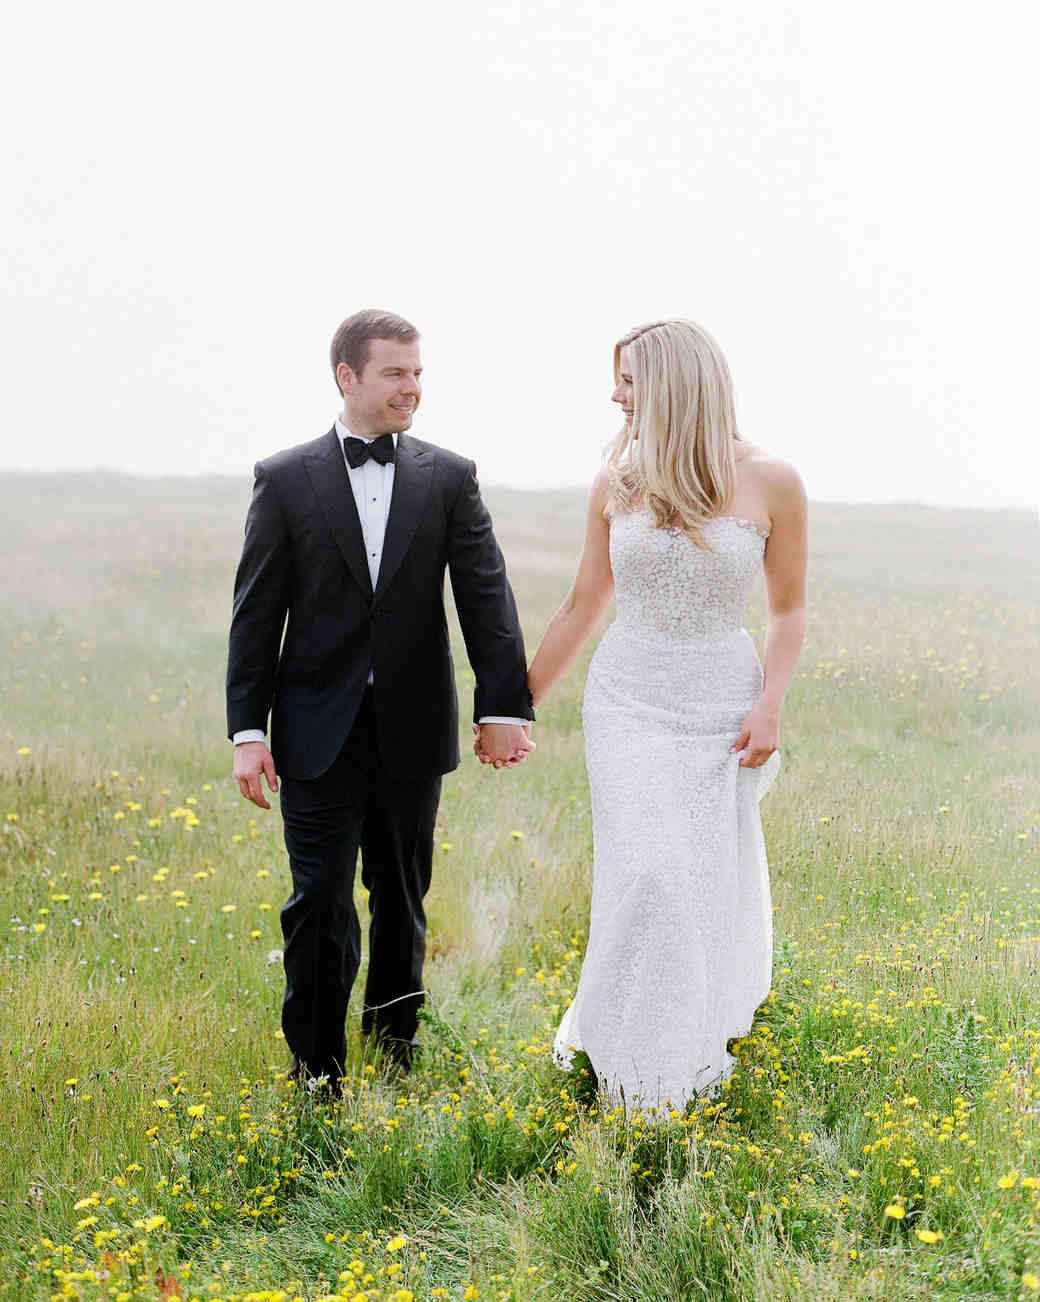 whitney zach wedding couple holding hands in field